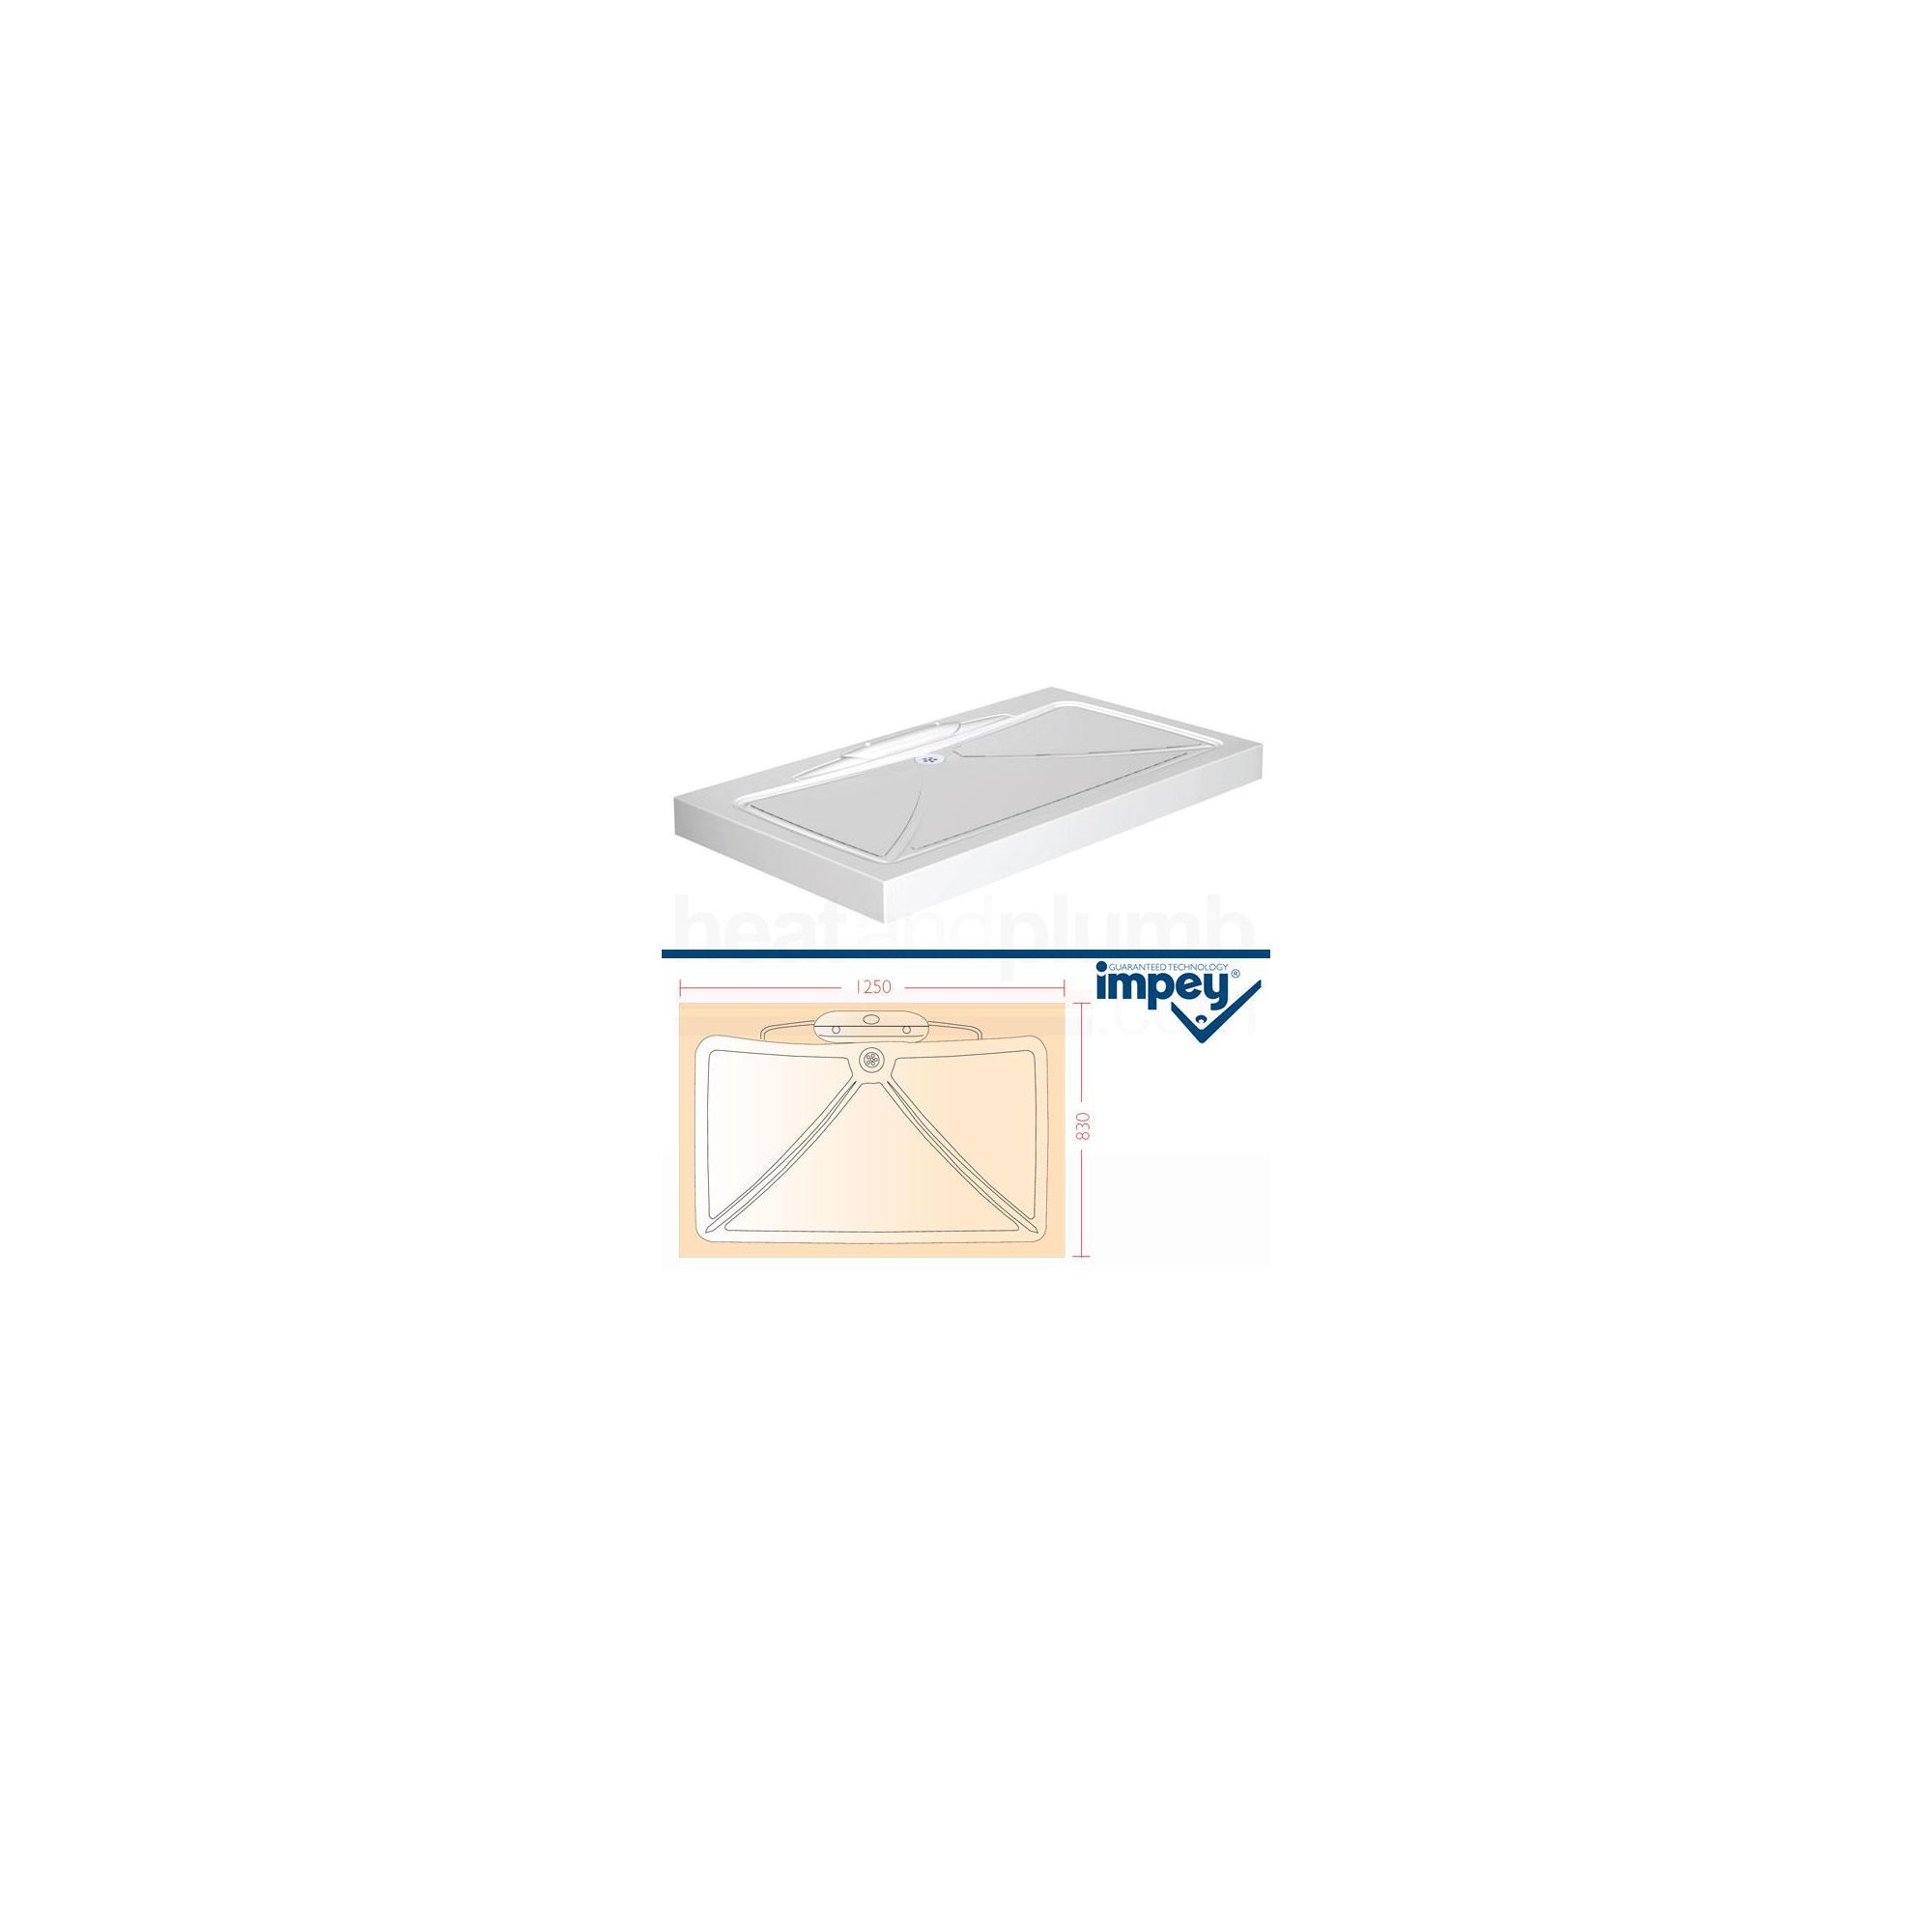 Impey Mendip Shower Tray 1250mm x 830mm at Tesco Direct